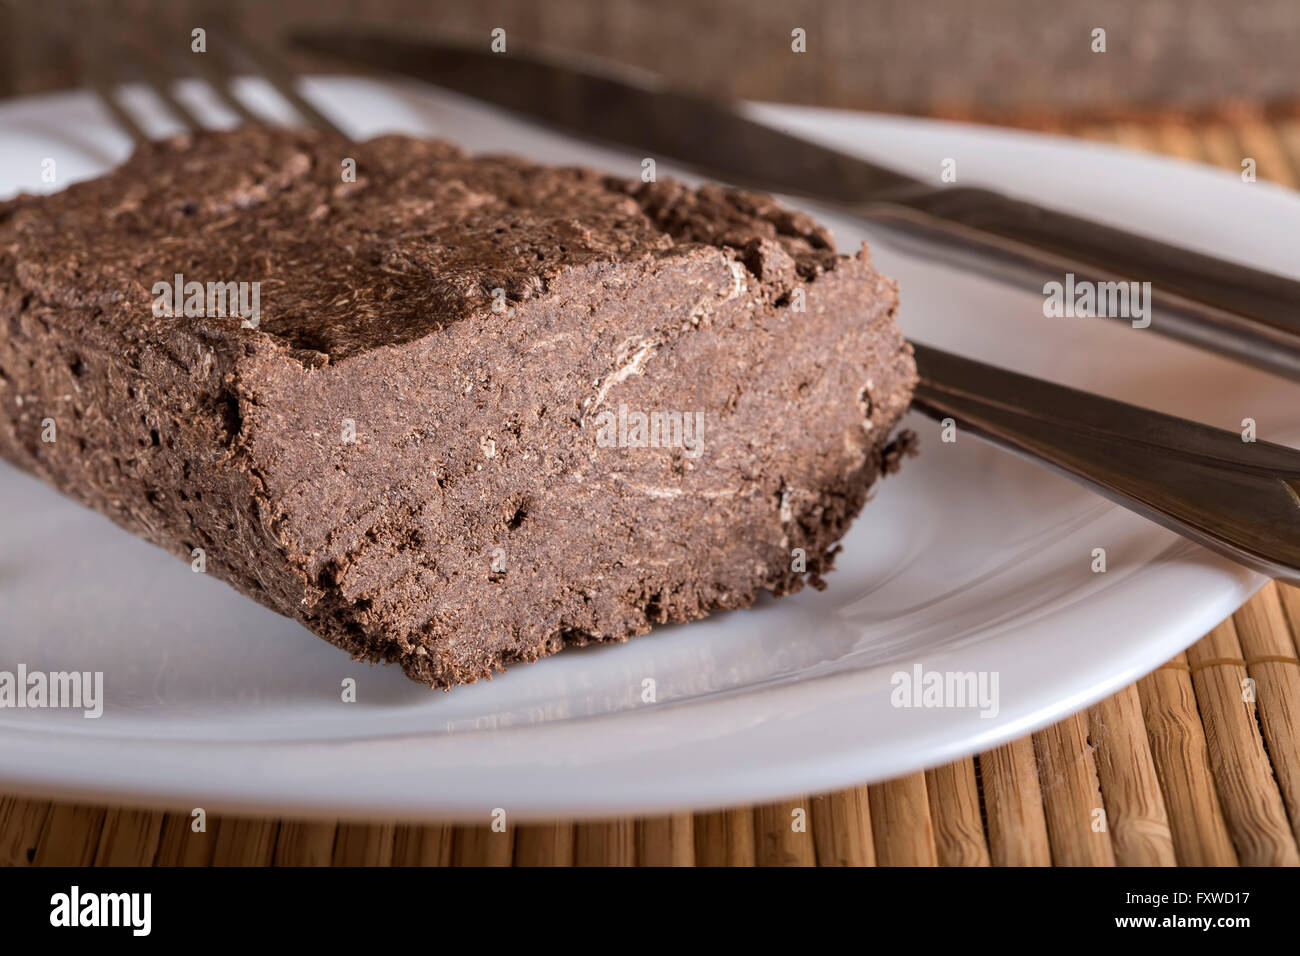 Sunflower halva with cocoa on plate, on wooden background - Stock Image